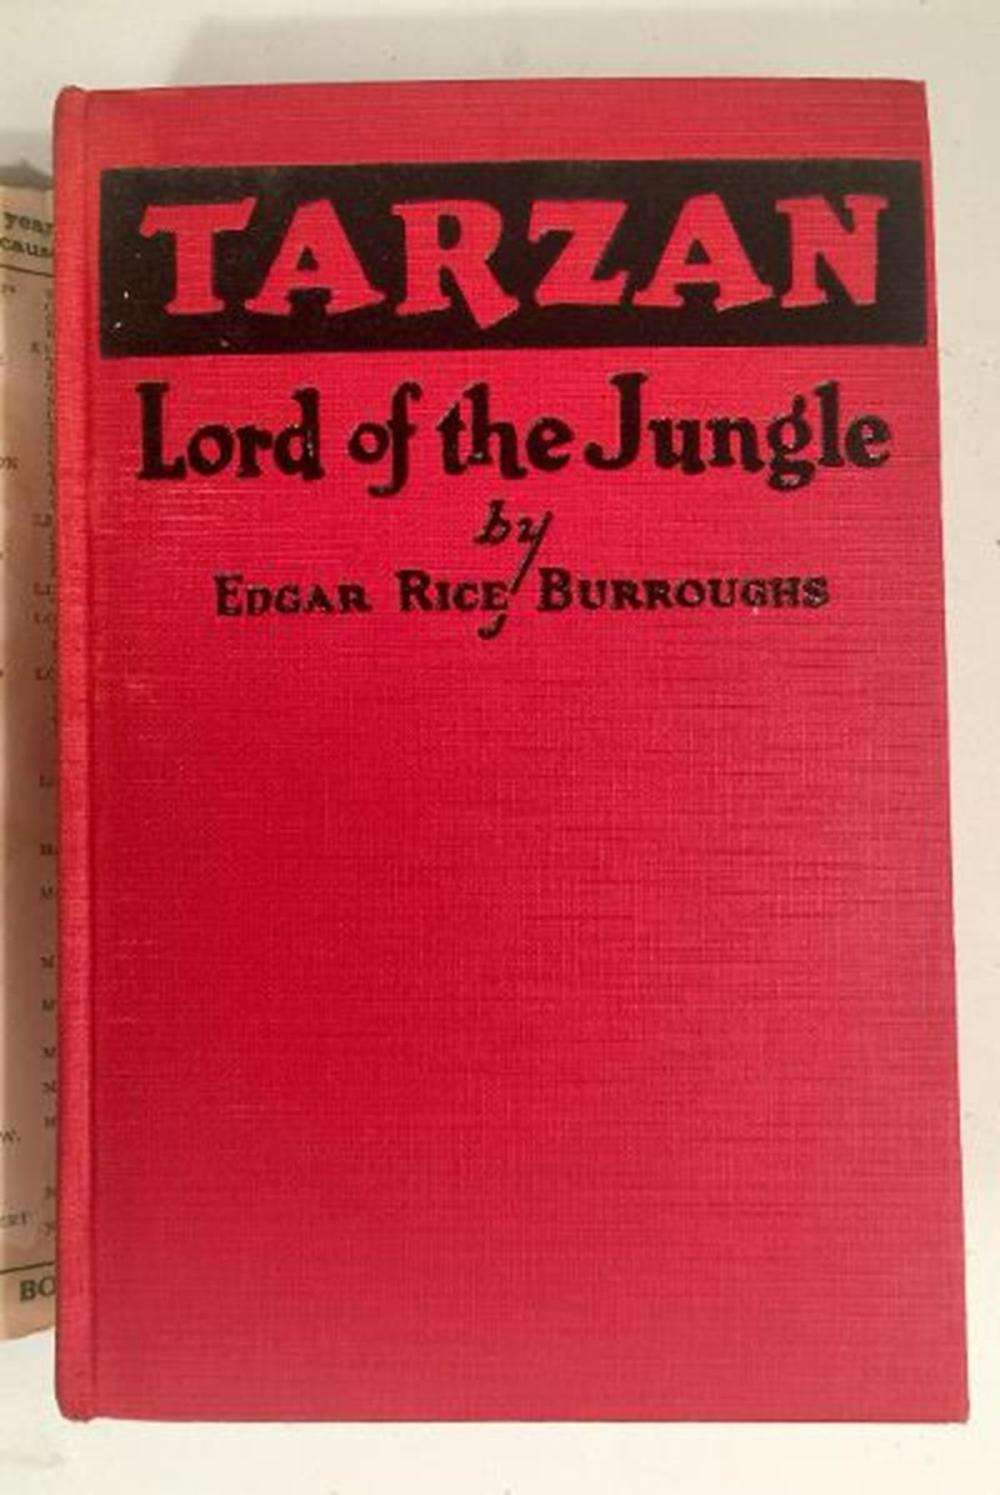 1928 Tarzan Lord Of The Jungle by Edgar Rice Burroughs w/ Dust Jacket ILLUSTRATED